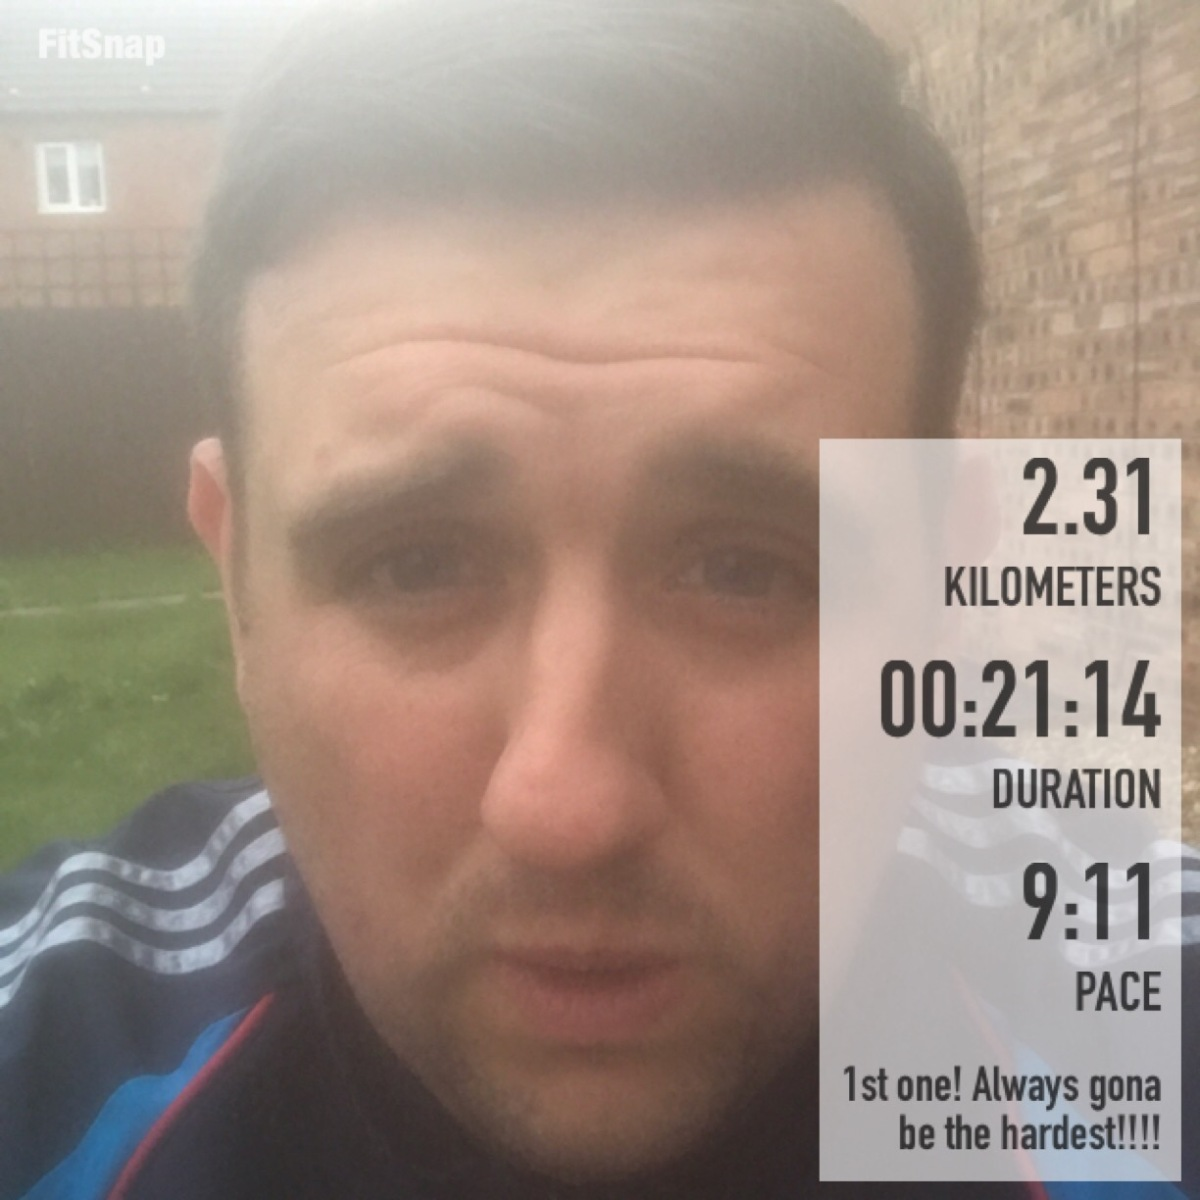 Week 1 of my Marathon Training